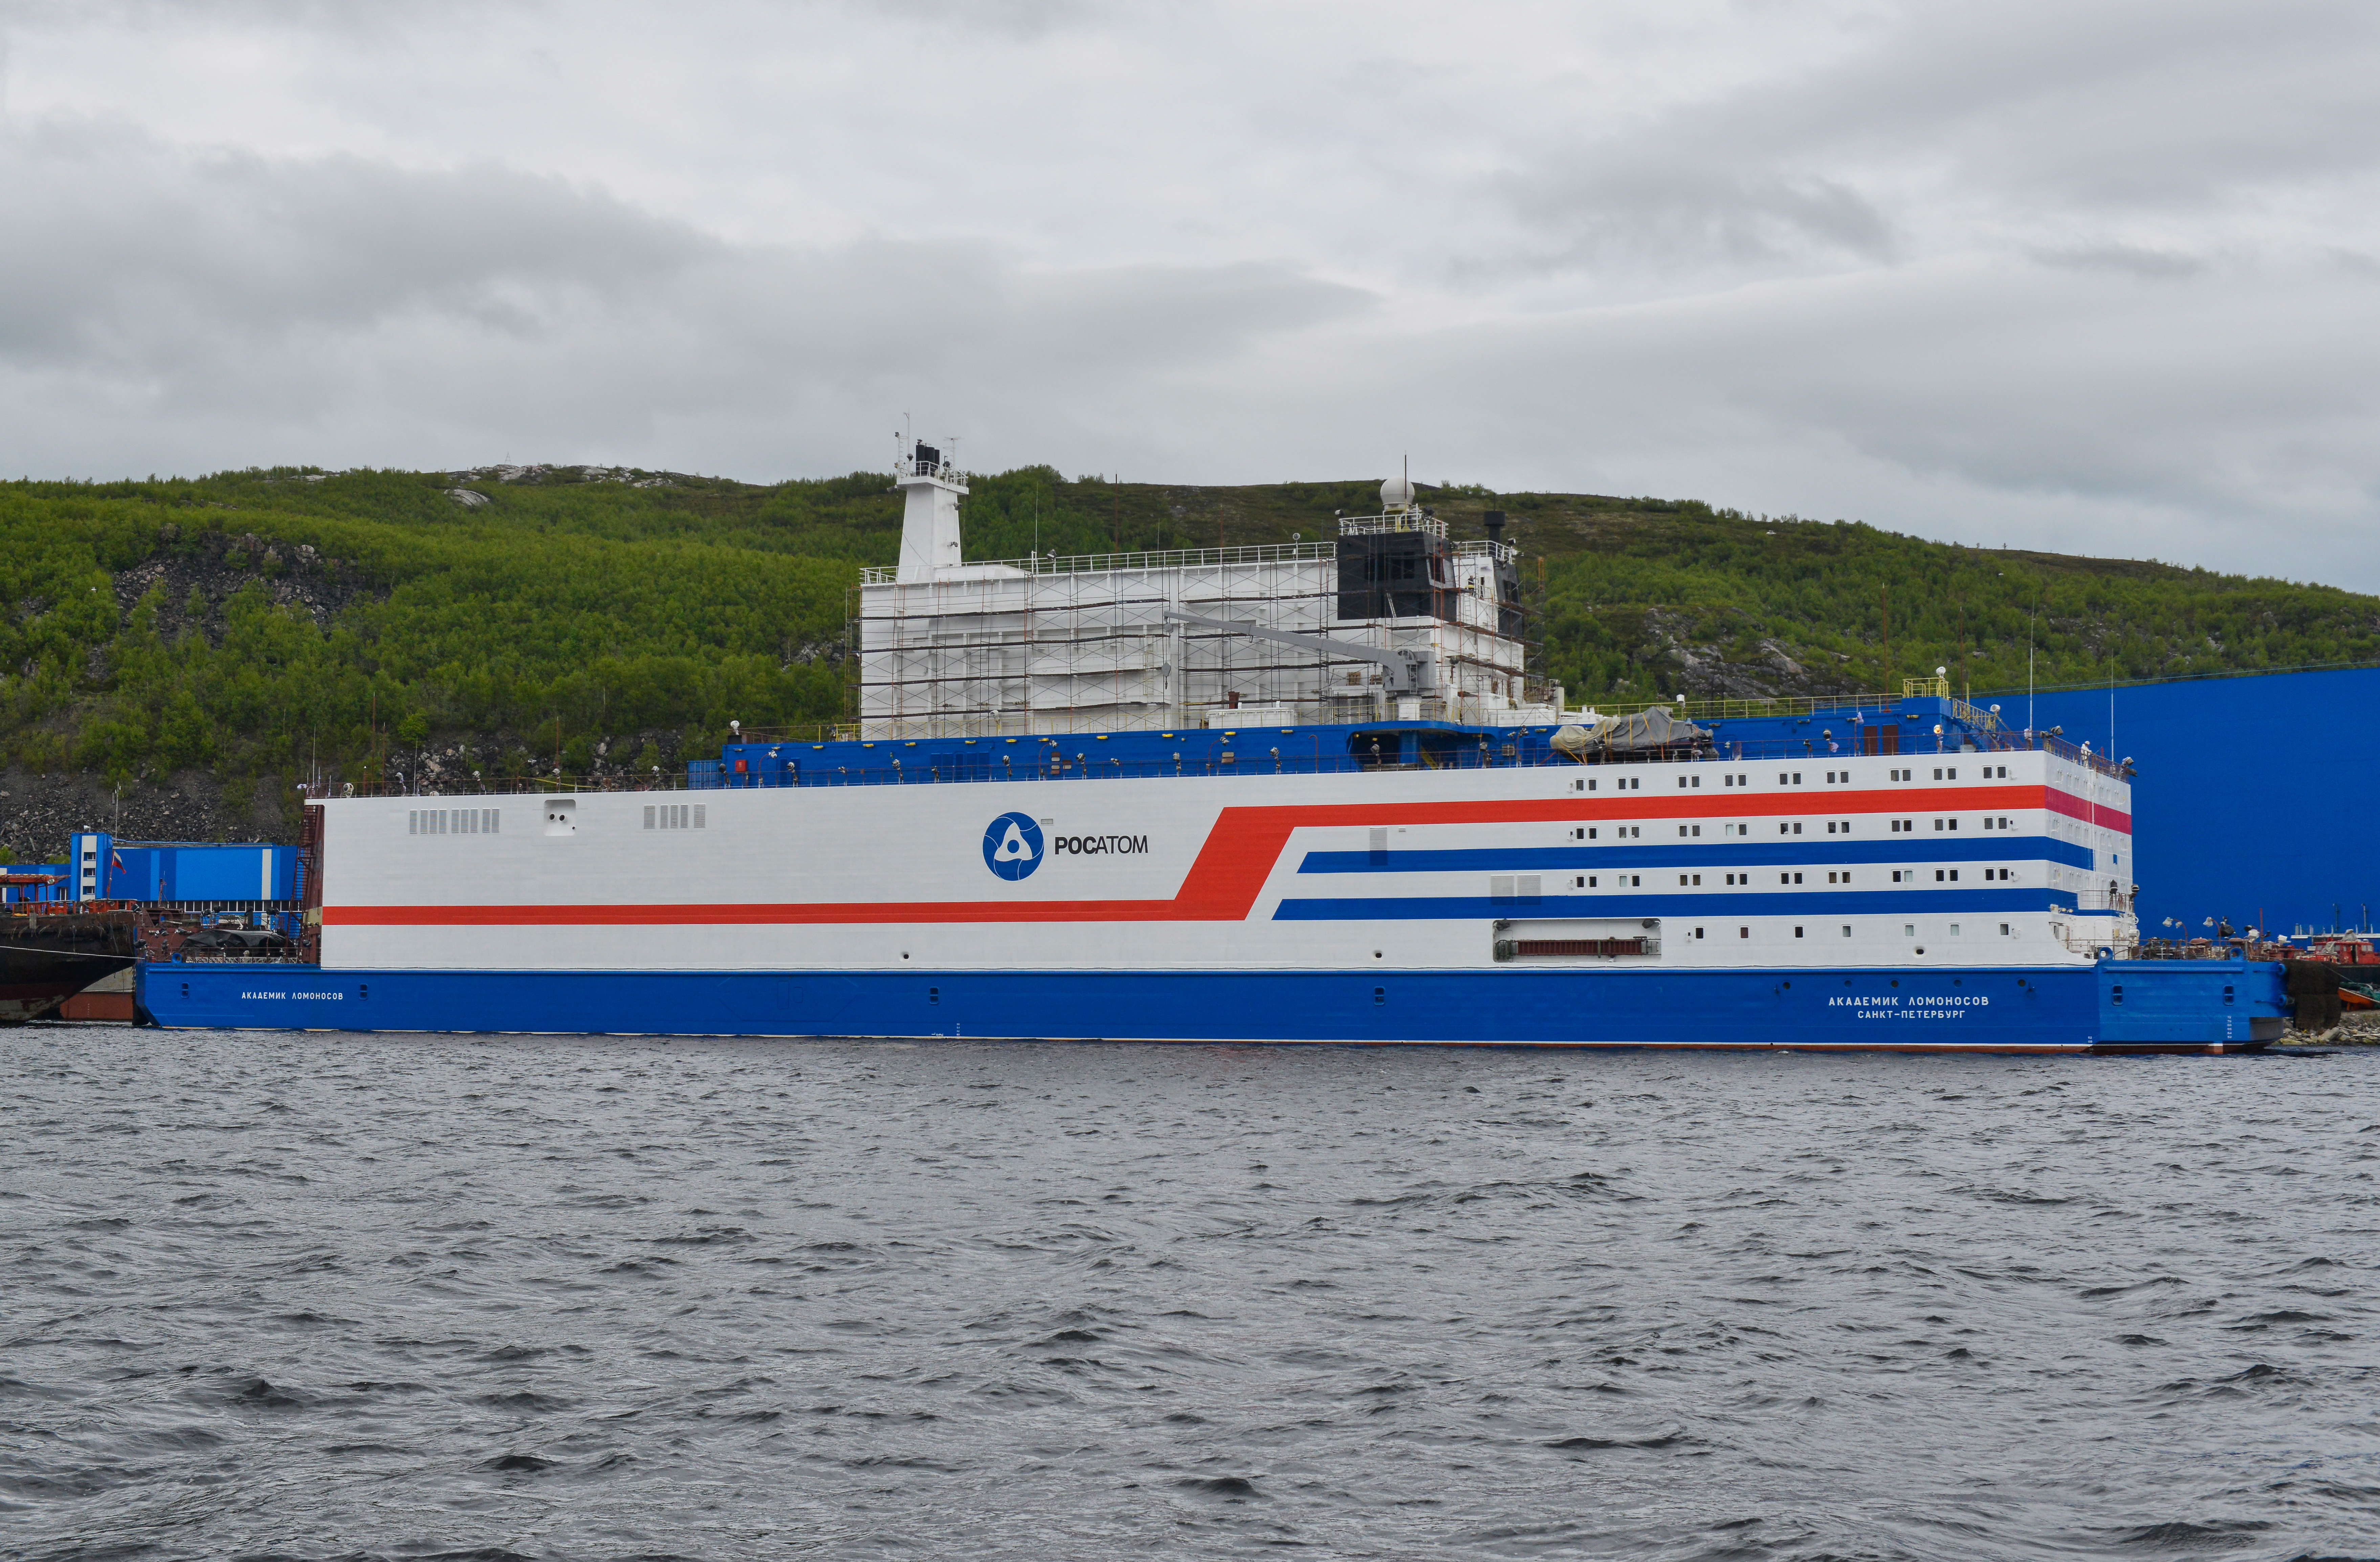 A view of Akademik Lomonosov, a floating nuclear power unit, its hull painted at the Atomflot base; being part of a floating nuclear power station, the vessel belongs to a new class of energy sources based on Russian nuclear shipbuilding technologies.